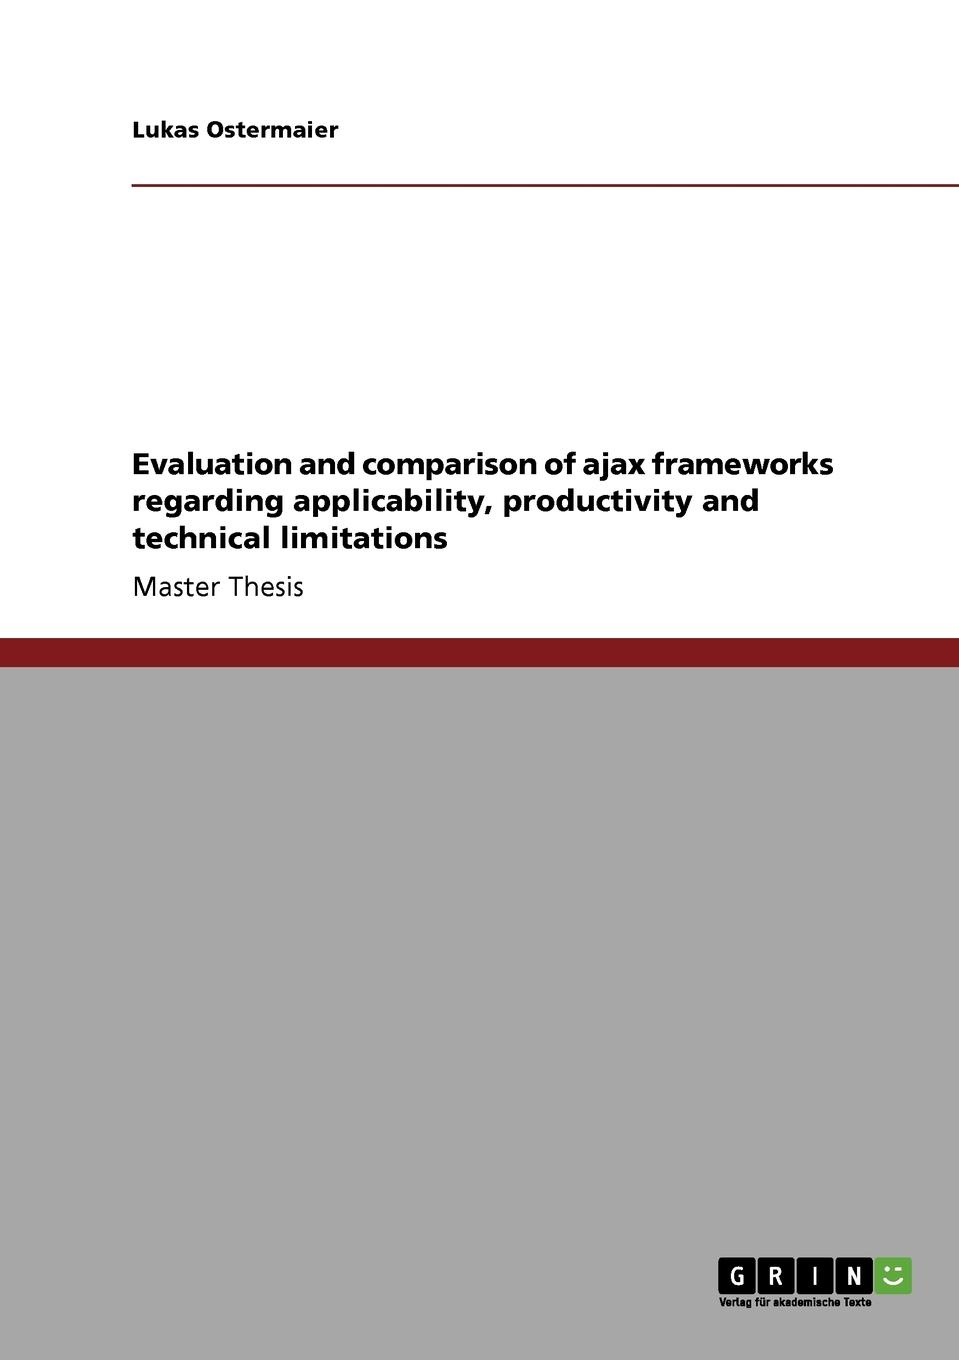 Lukas Ostermaier Evaluation and comparison of ajax frameworks regarding applicability, productivity and technical limitations steve holzner ajax for dummies